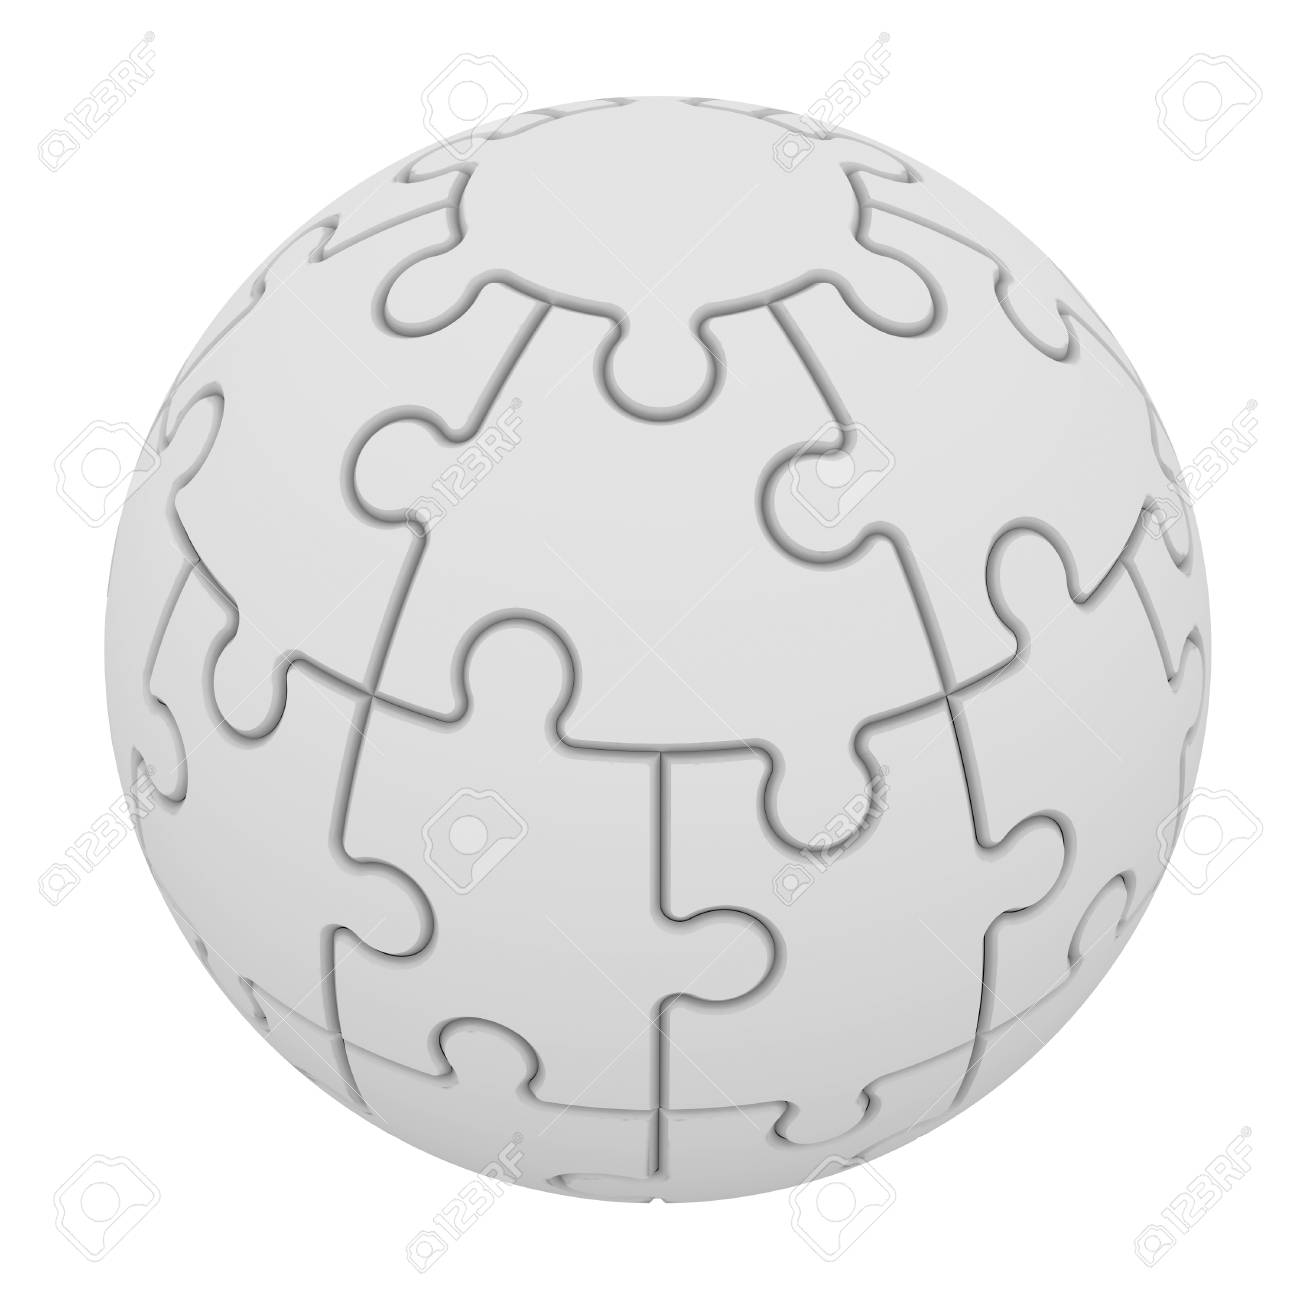 Sphere consisting of puzzles  Isolated render on a white Stock Photo - 23917992